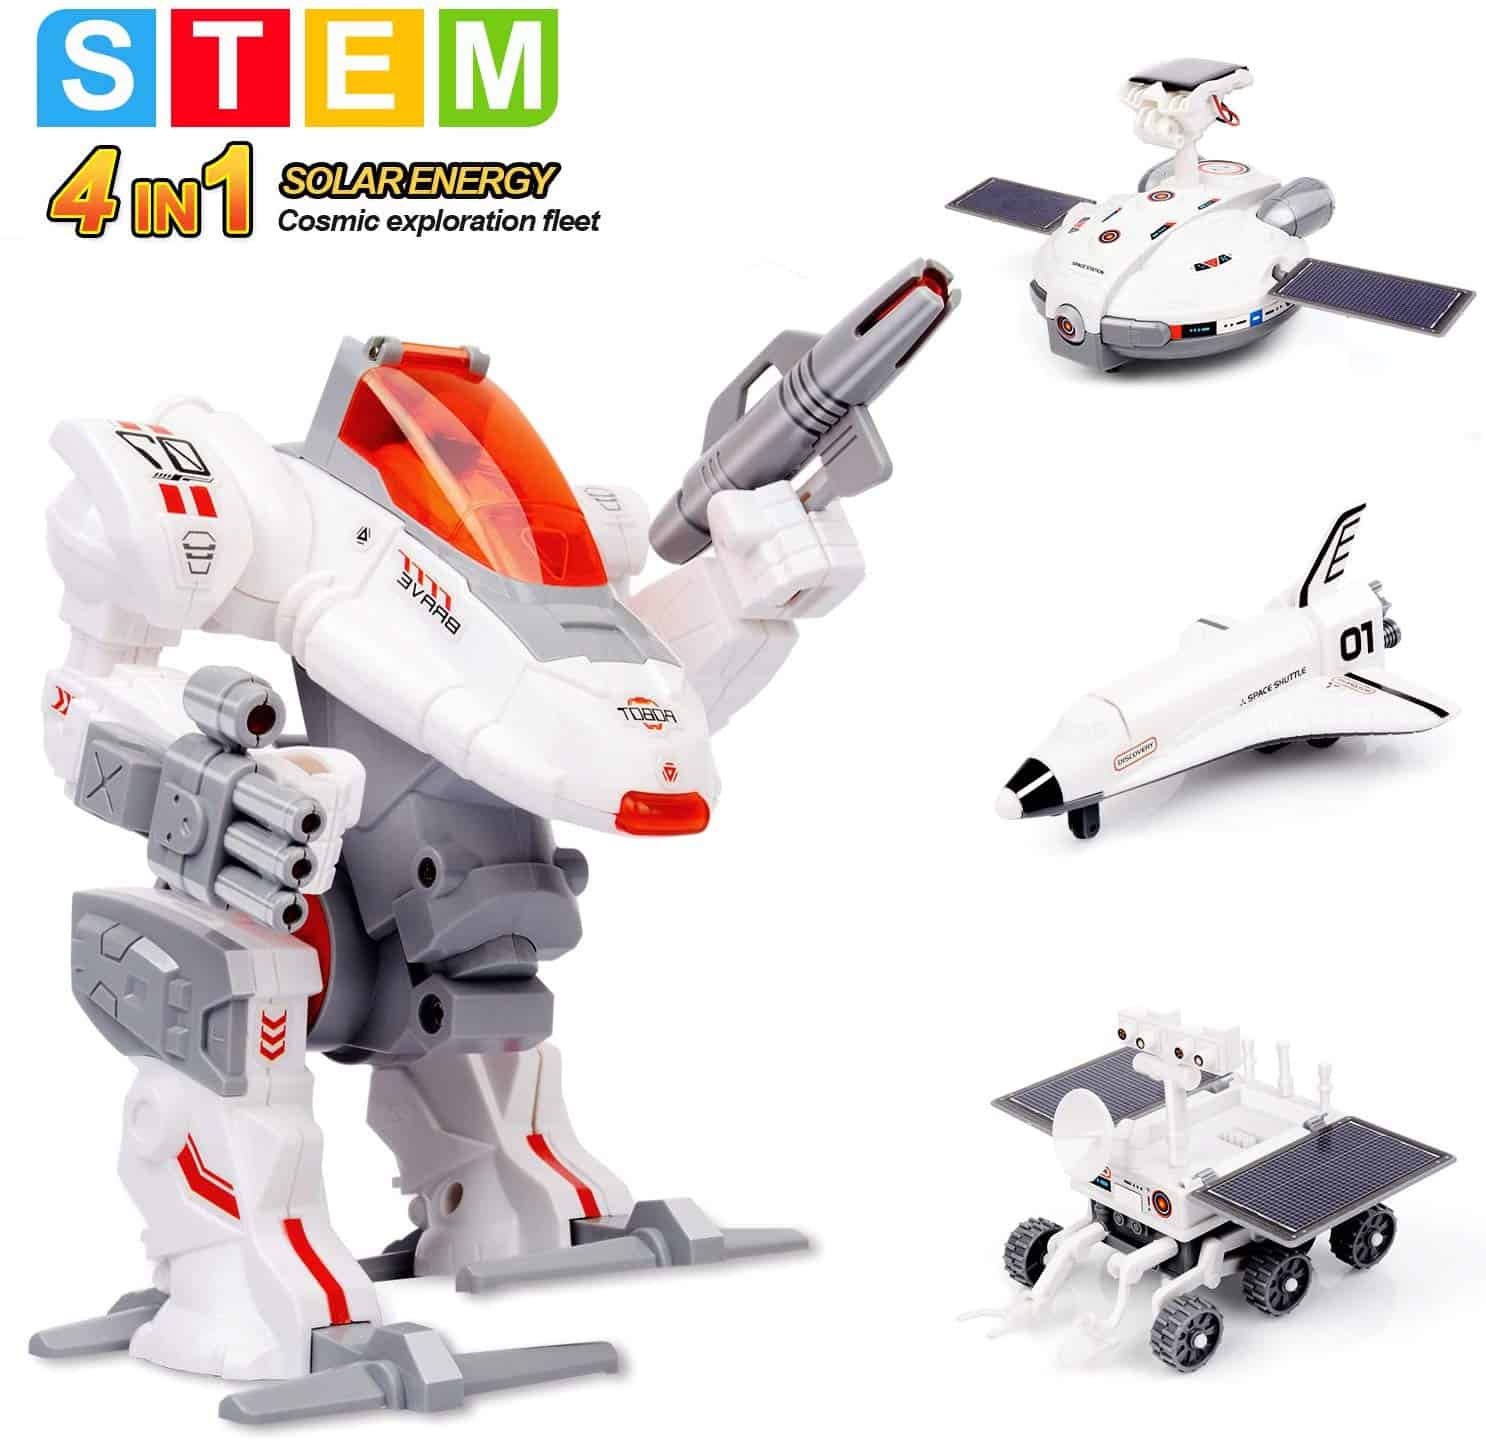 Sillbird STEM 4-in-1 Solar Science Robot kit for Kids